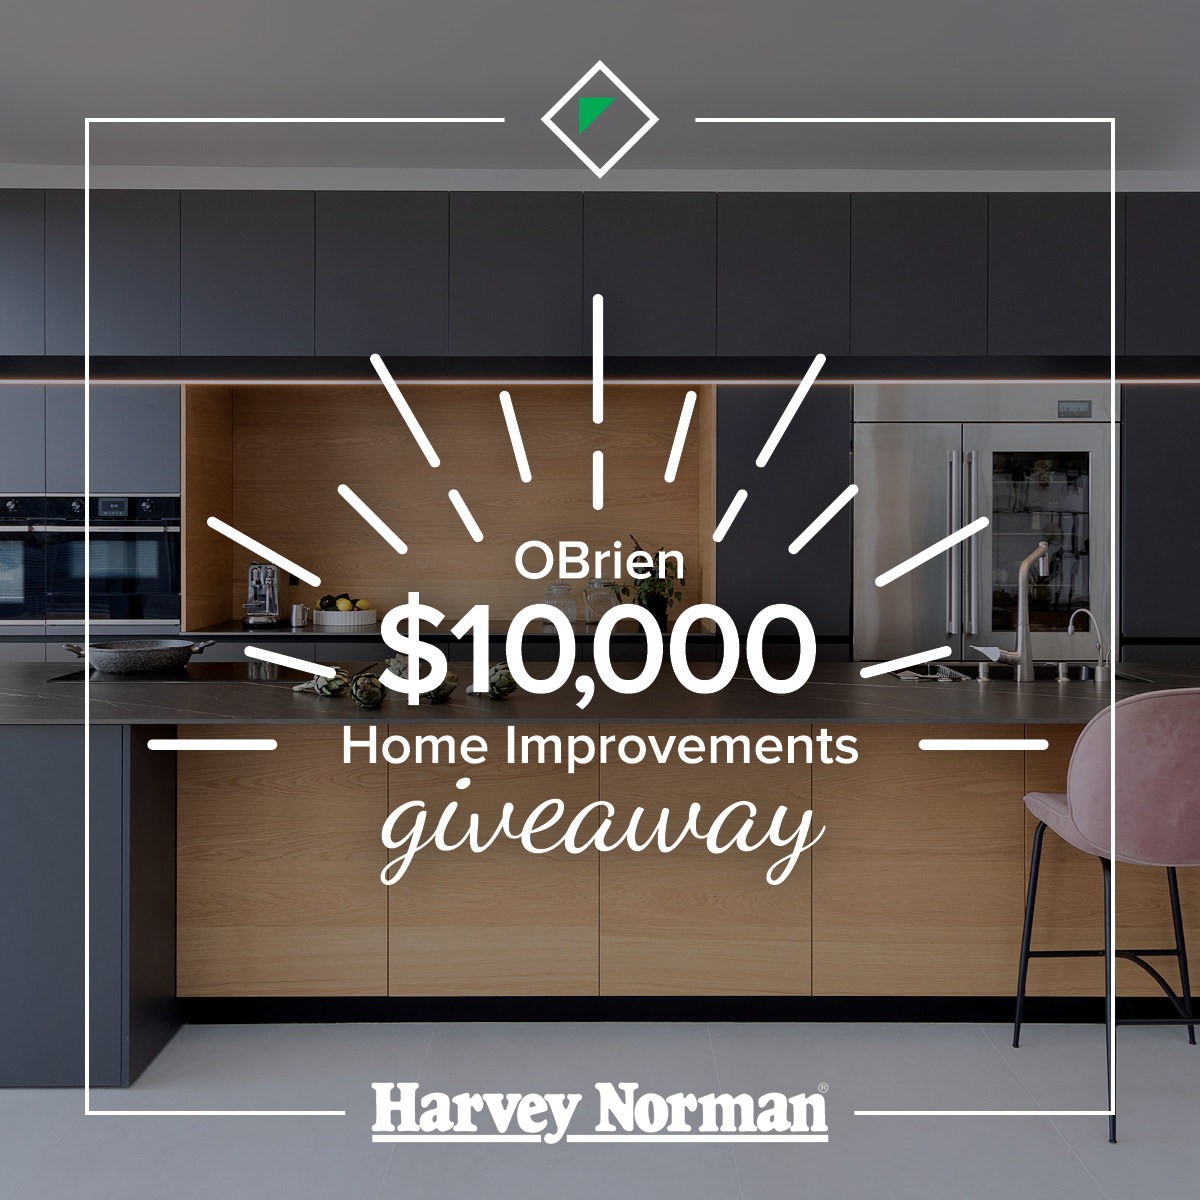 Book An Appraisal with OBrien Real Estate To Win $10,000